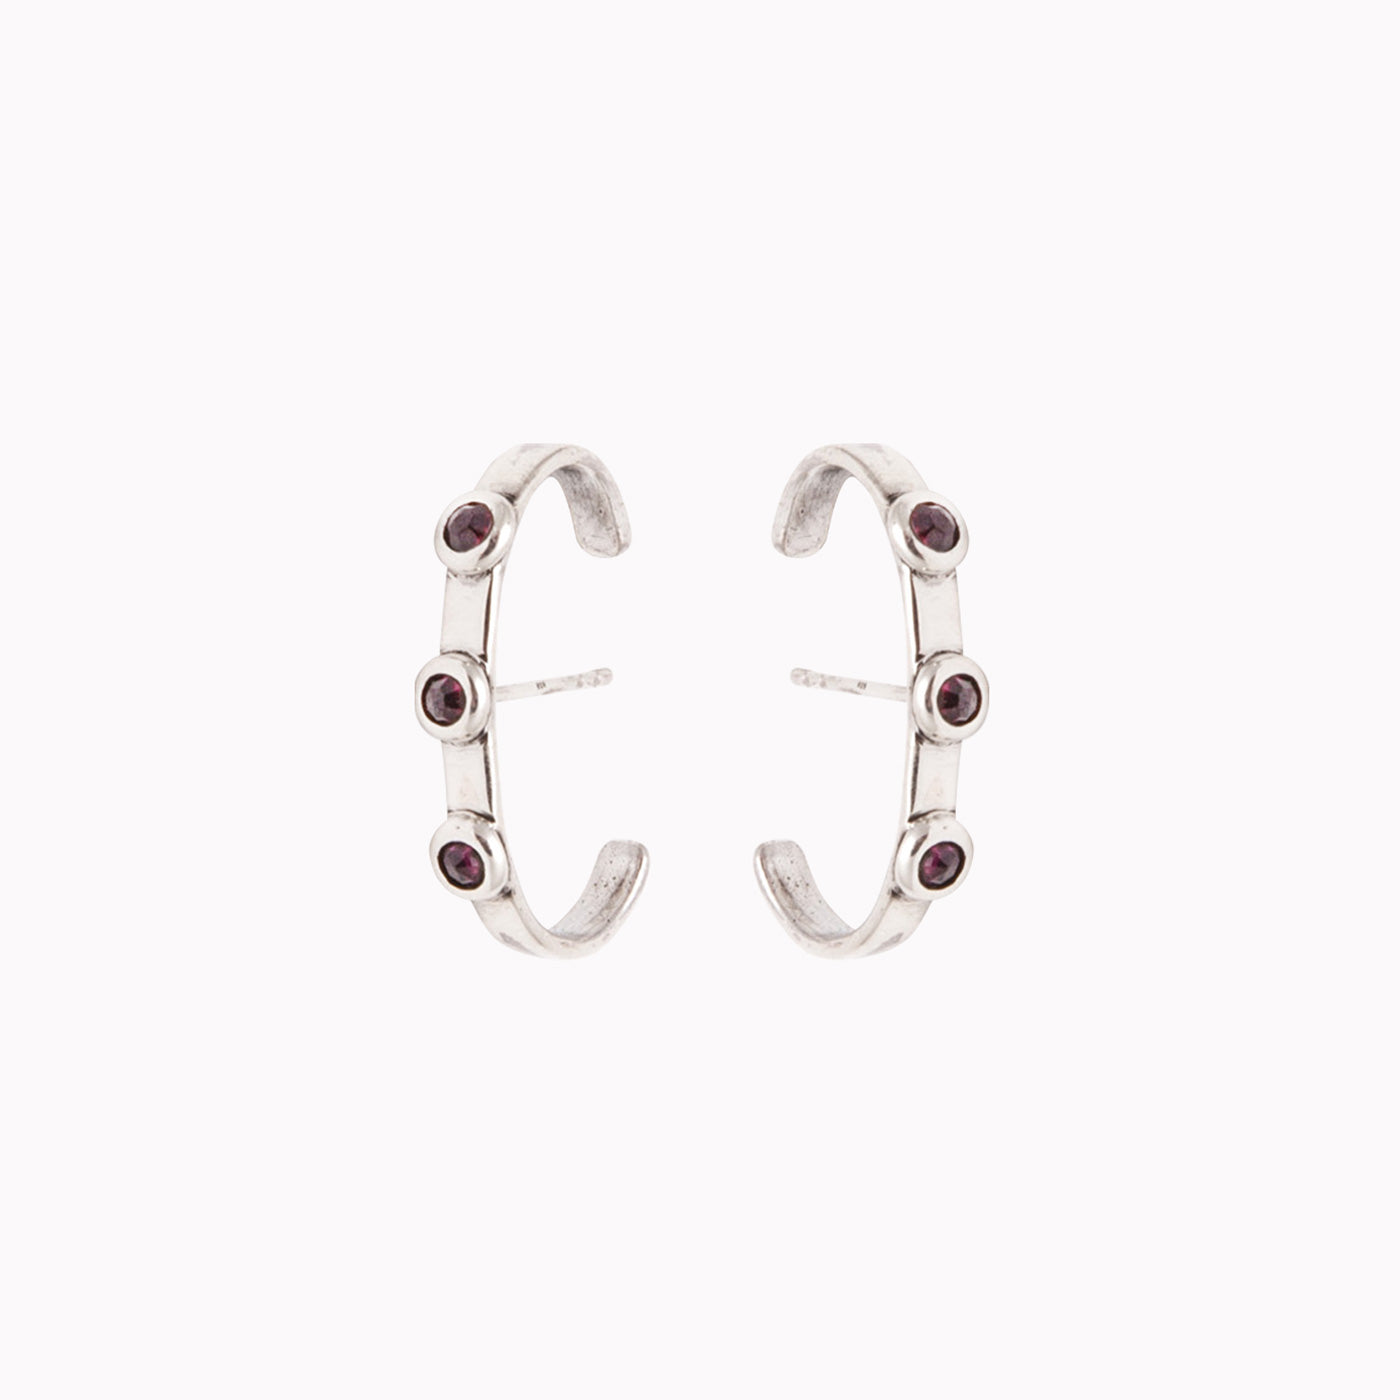 earrings luna earring silver red garnets product view innan jewellery